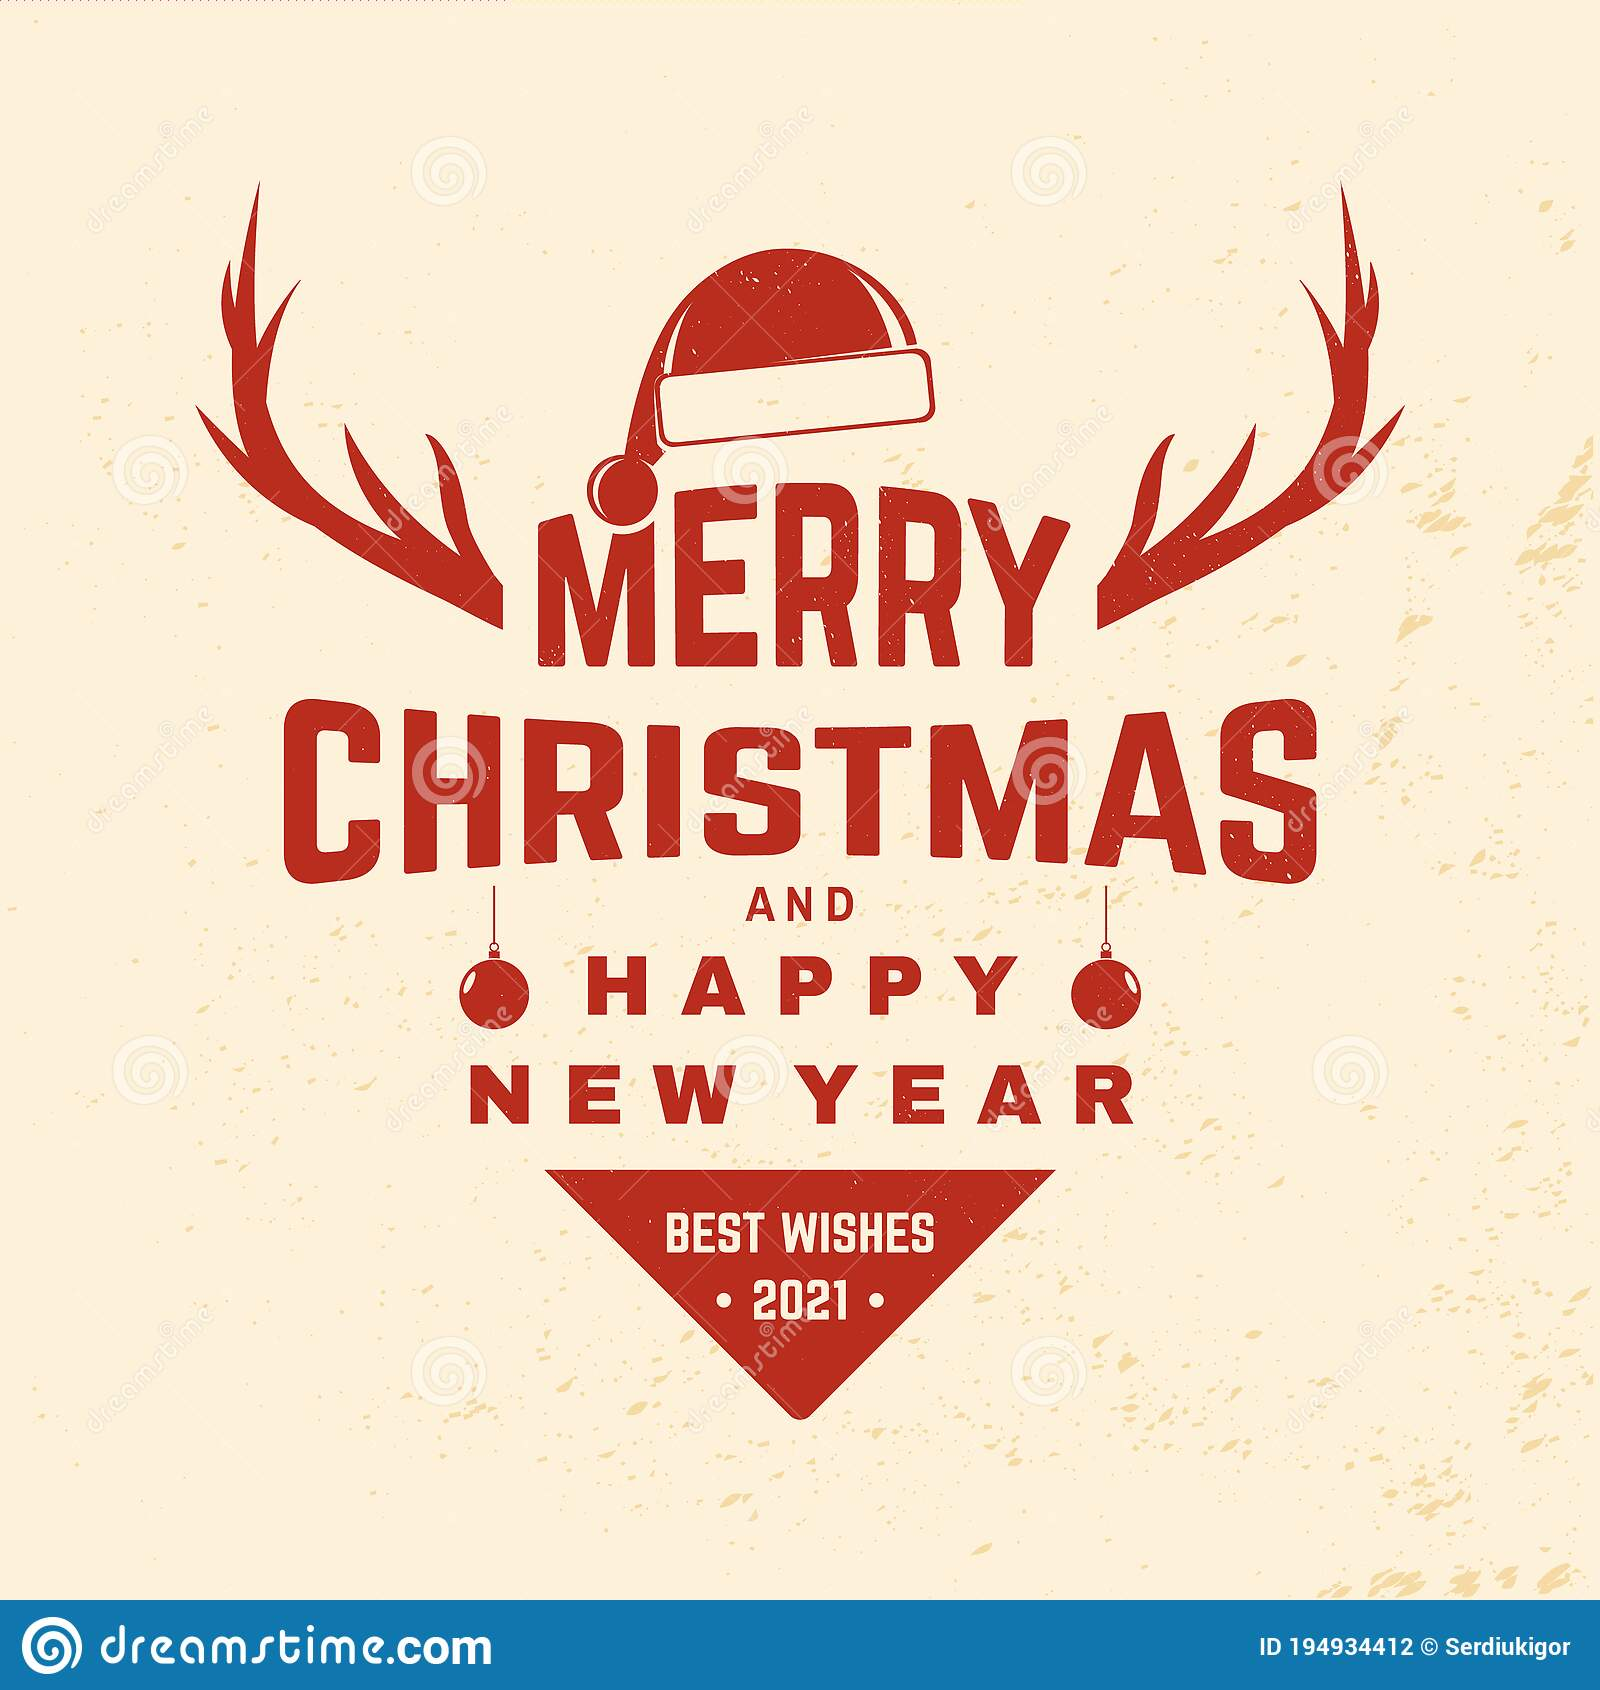 Hanging Banner Images Merry Christmas & Happy New Year 2021 Merry Christmas And Happy New Year Stamp Sticker With Elk Christmas Hat Hanging Christmas Ball Vector Vintage Stock Vector Illustration Of Card Overlay 194934412